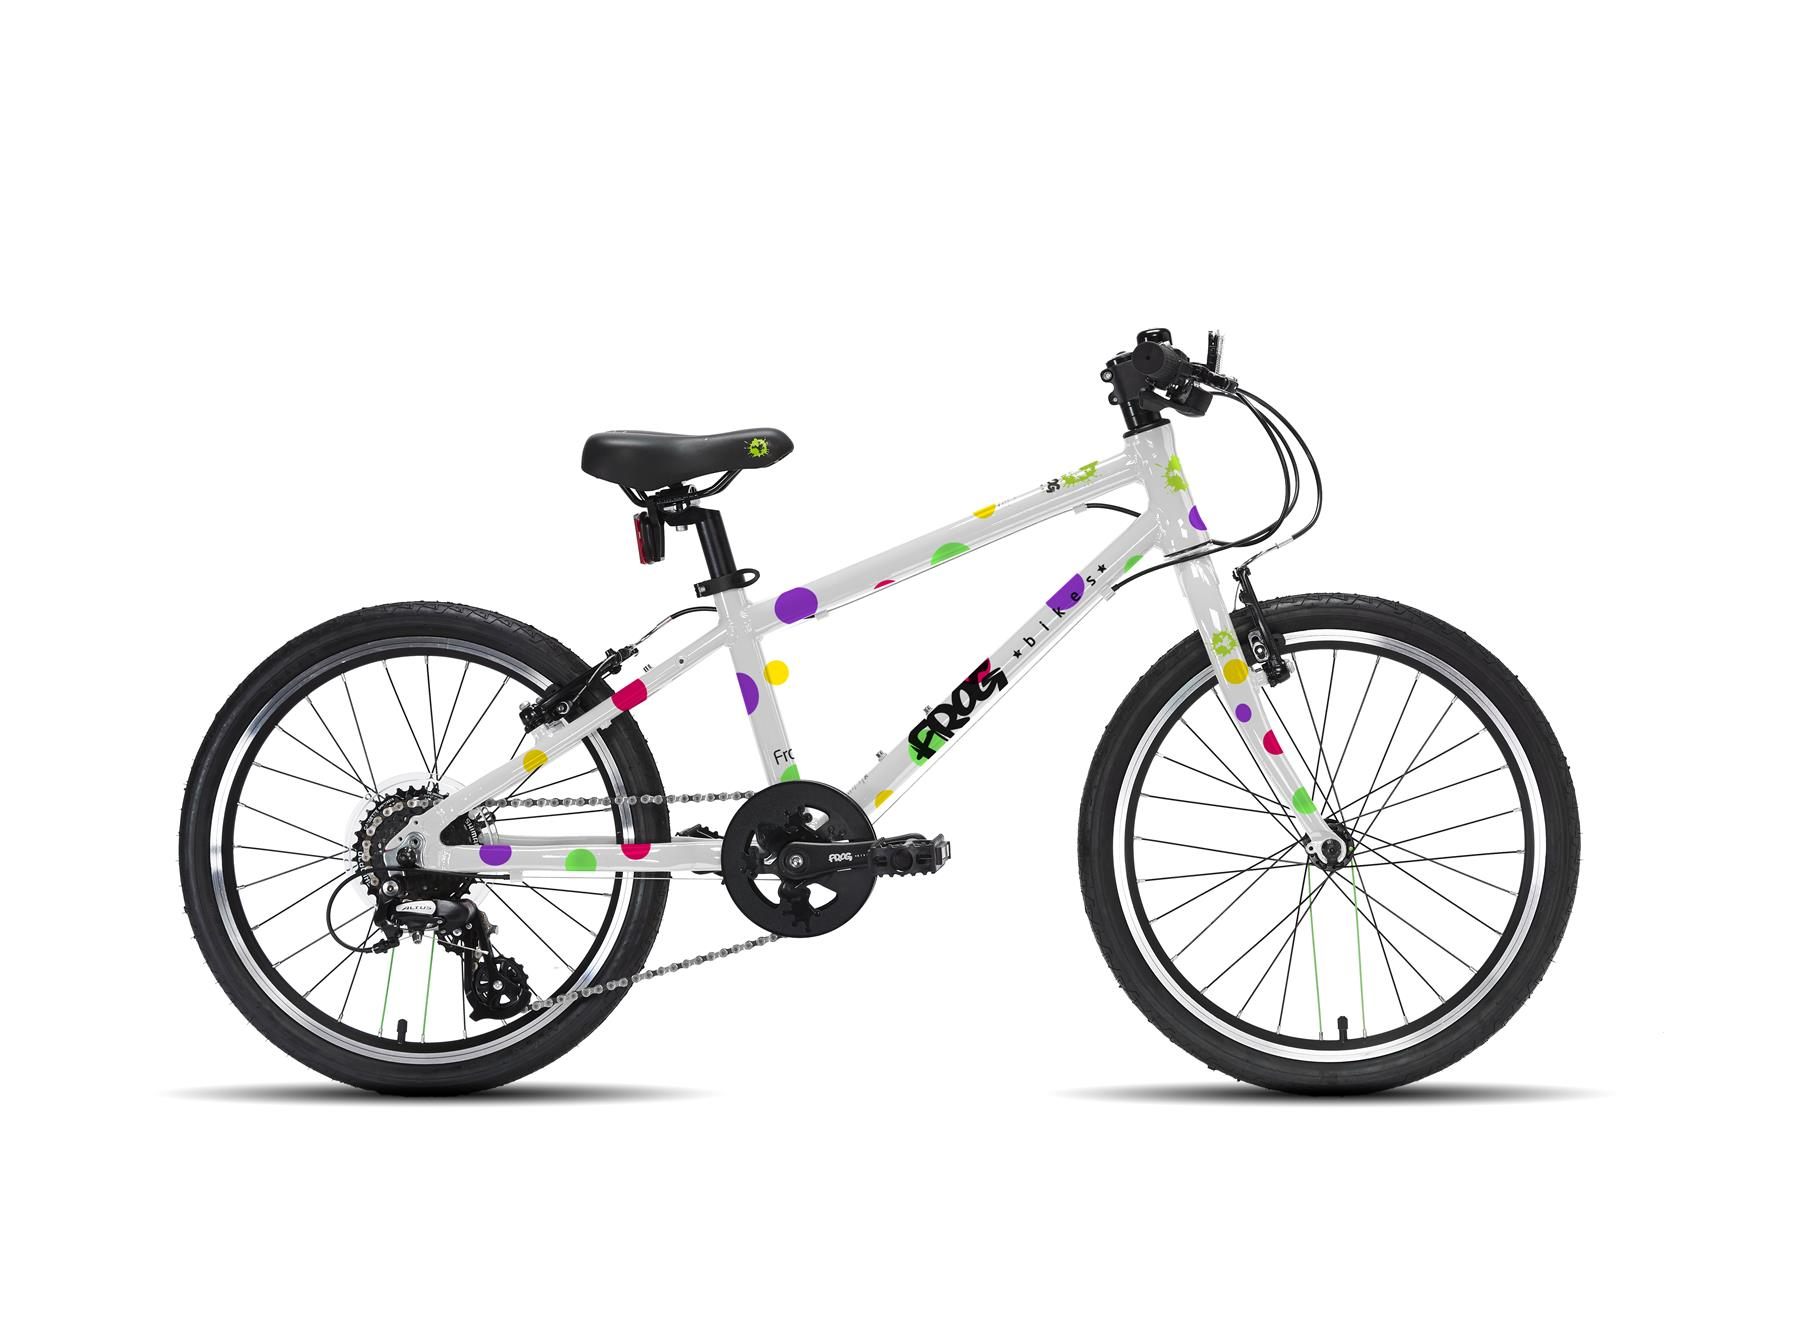 Frog 55 Hybrid Kids Bike for Ages 6-7 - Spotty - Buy Online ...